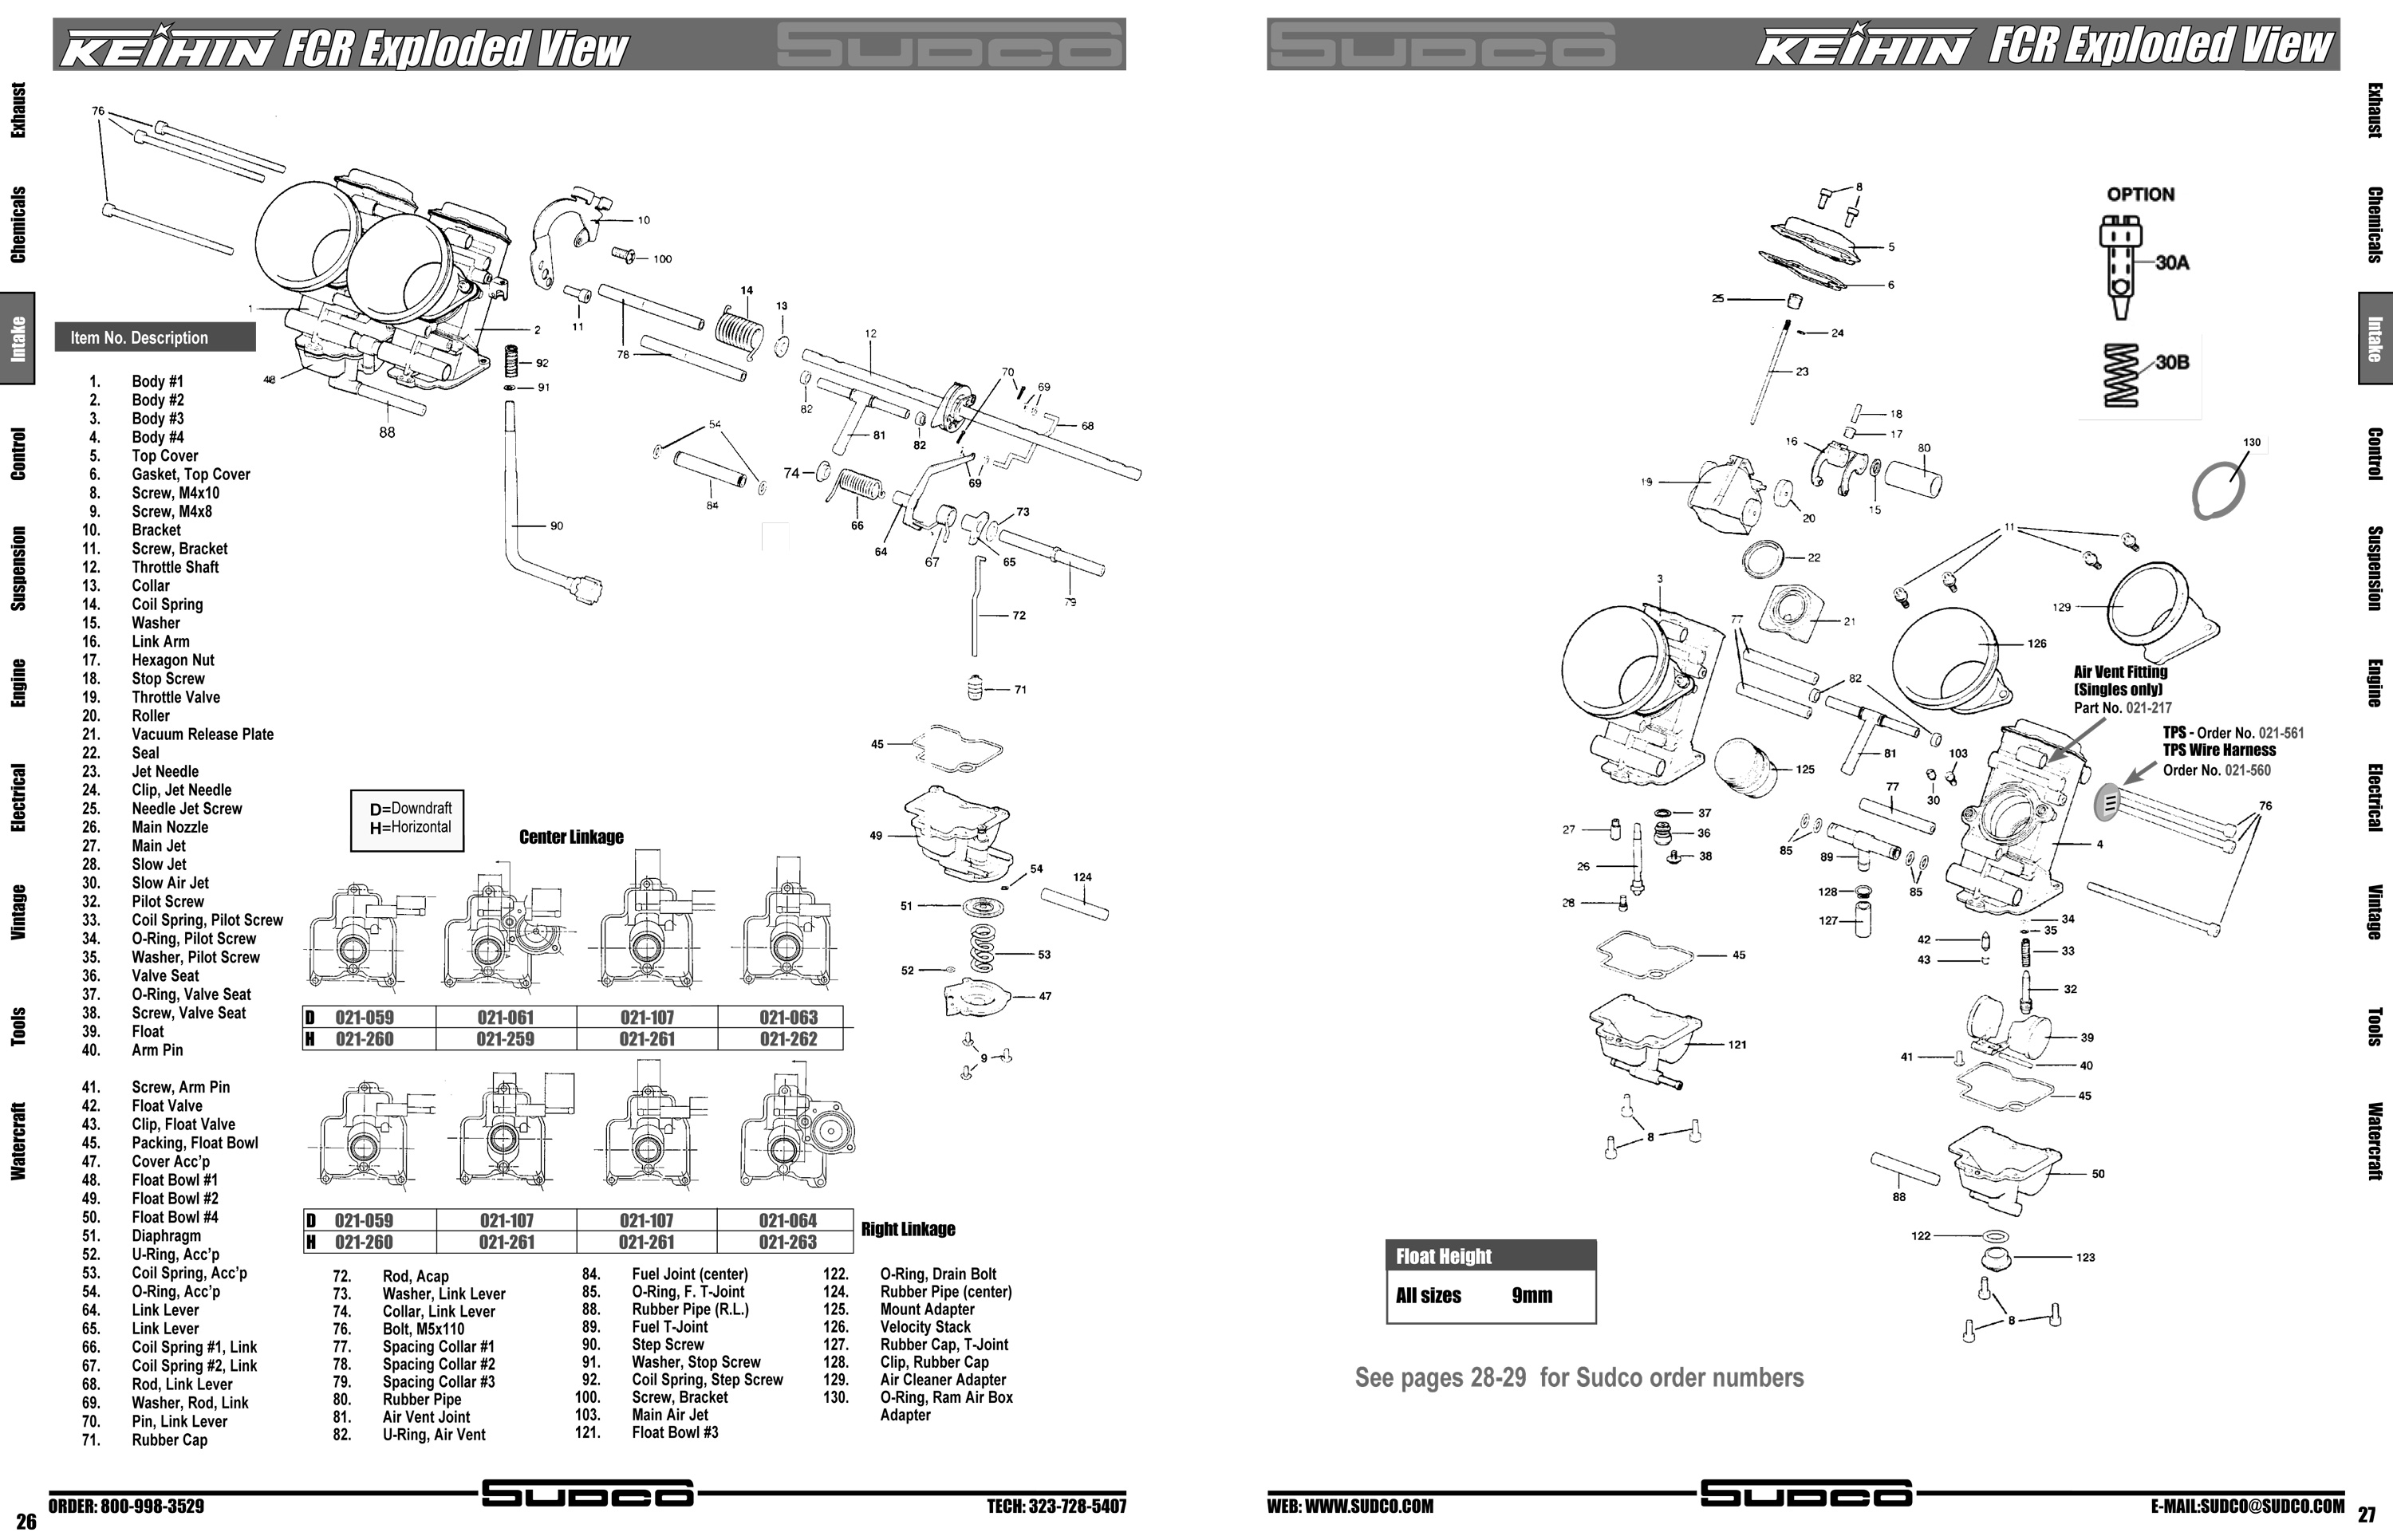 Crf 50 Carburetor Diagram Trusted Wiring Honda Crf50 Carb Electrical Work U2022 Crf50f